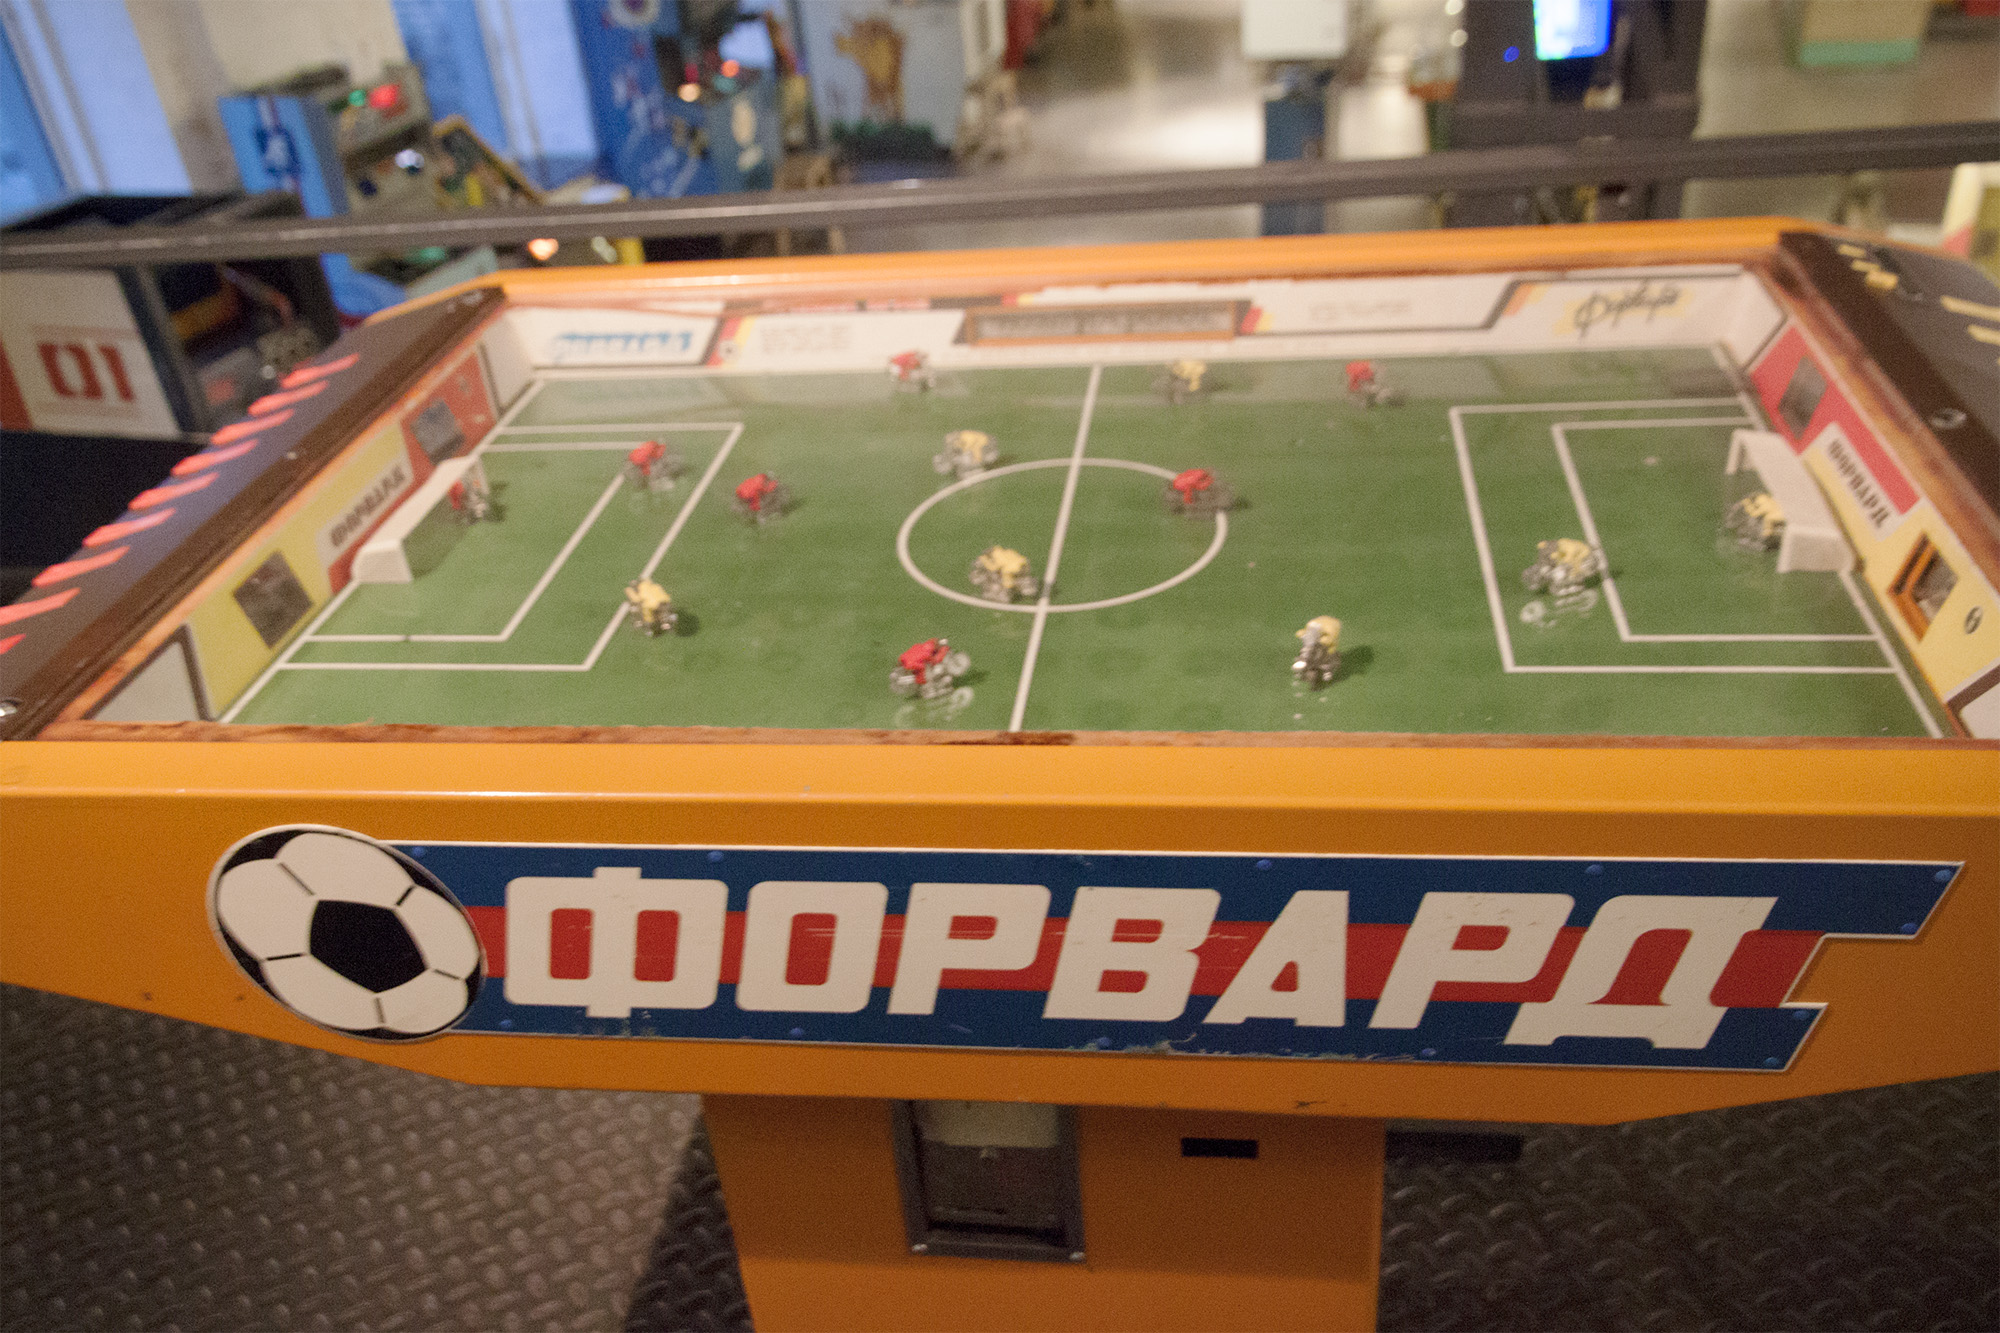 Bicycle football. Sorry Brooklyn, the Soviets had it first...